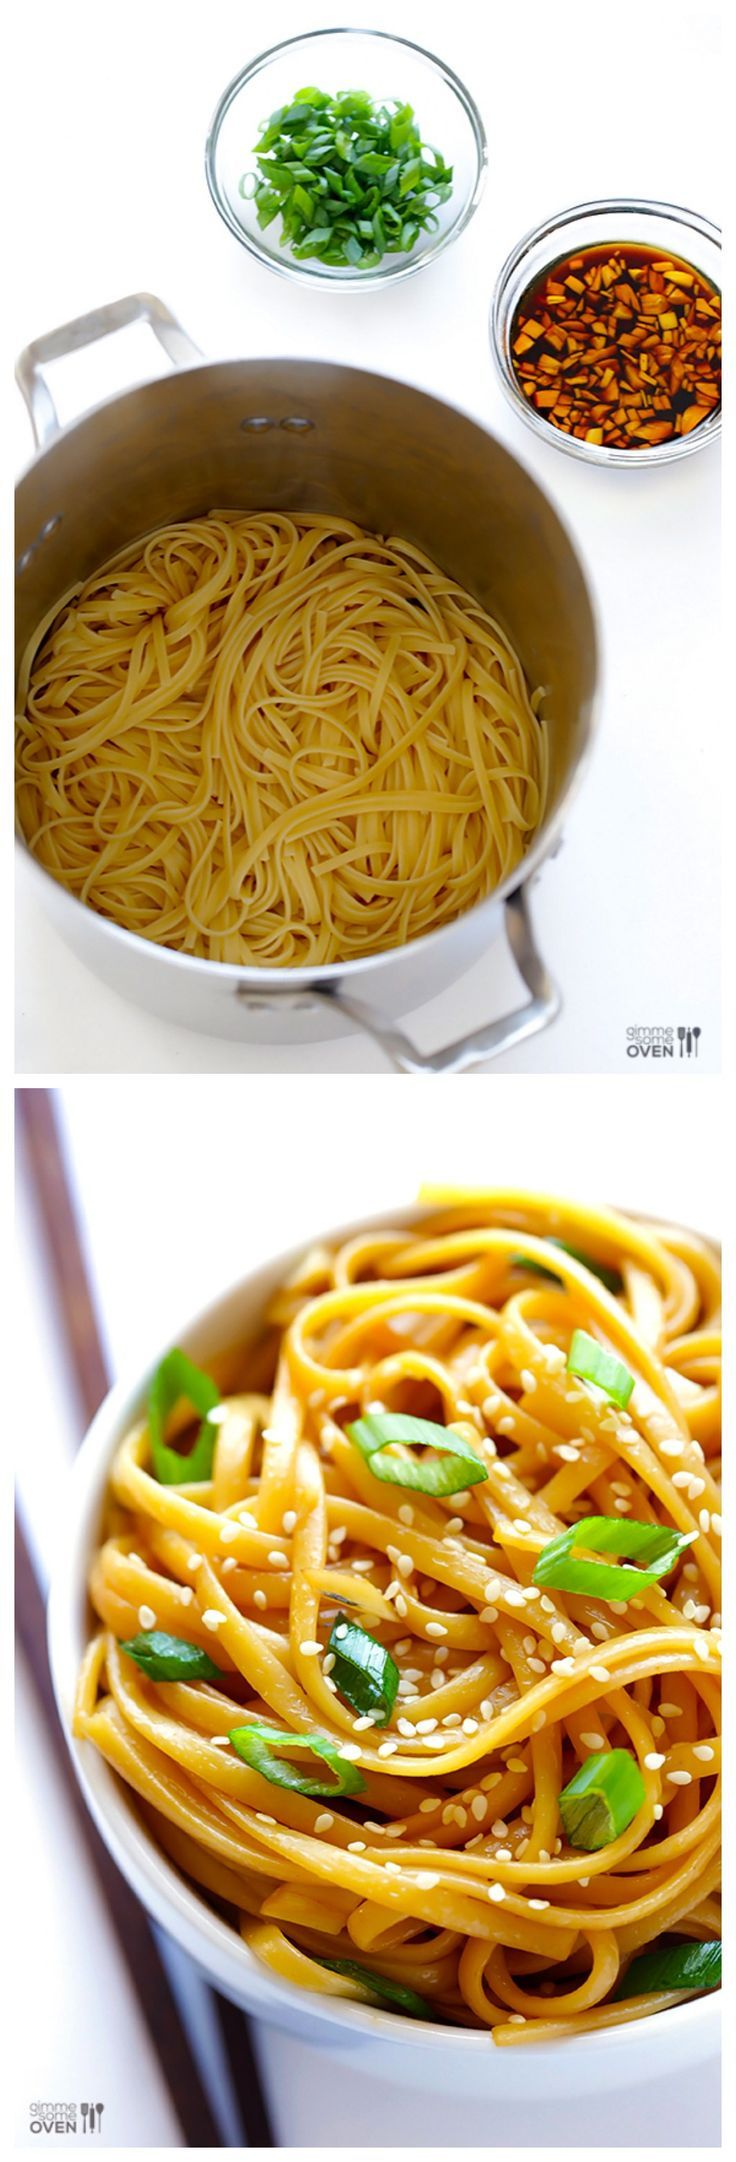 Easy Sesame Noodles -- these make the perfect hot (or cold!) side dish, or add some grilled meat and veggies to turn them into a full meal!